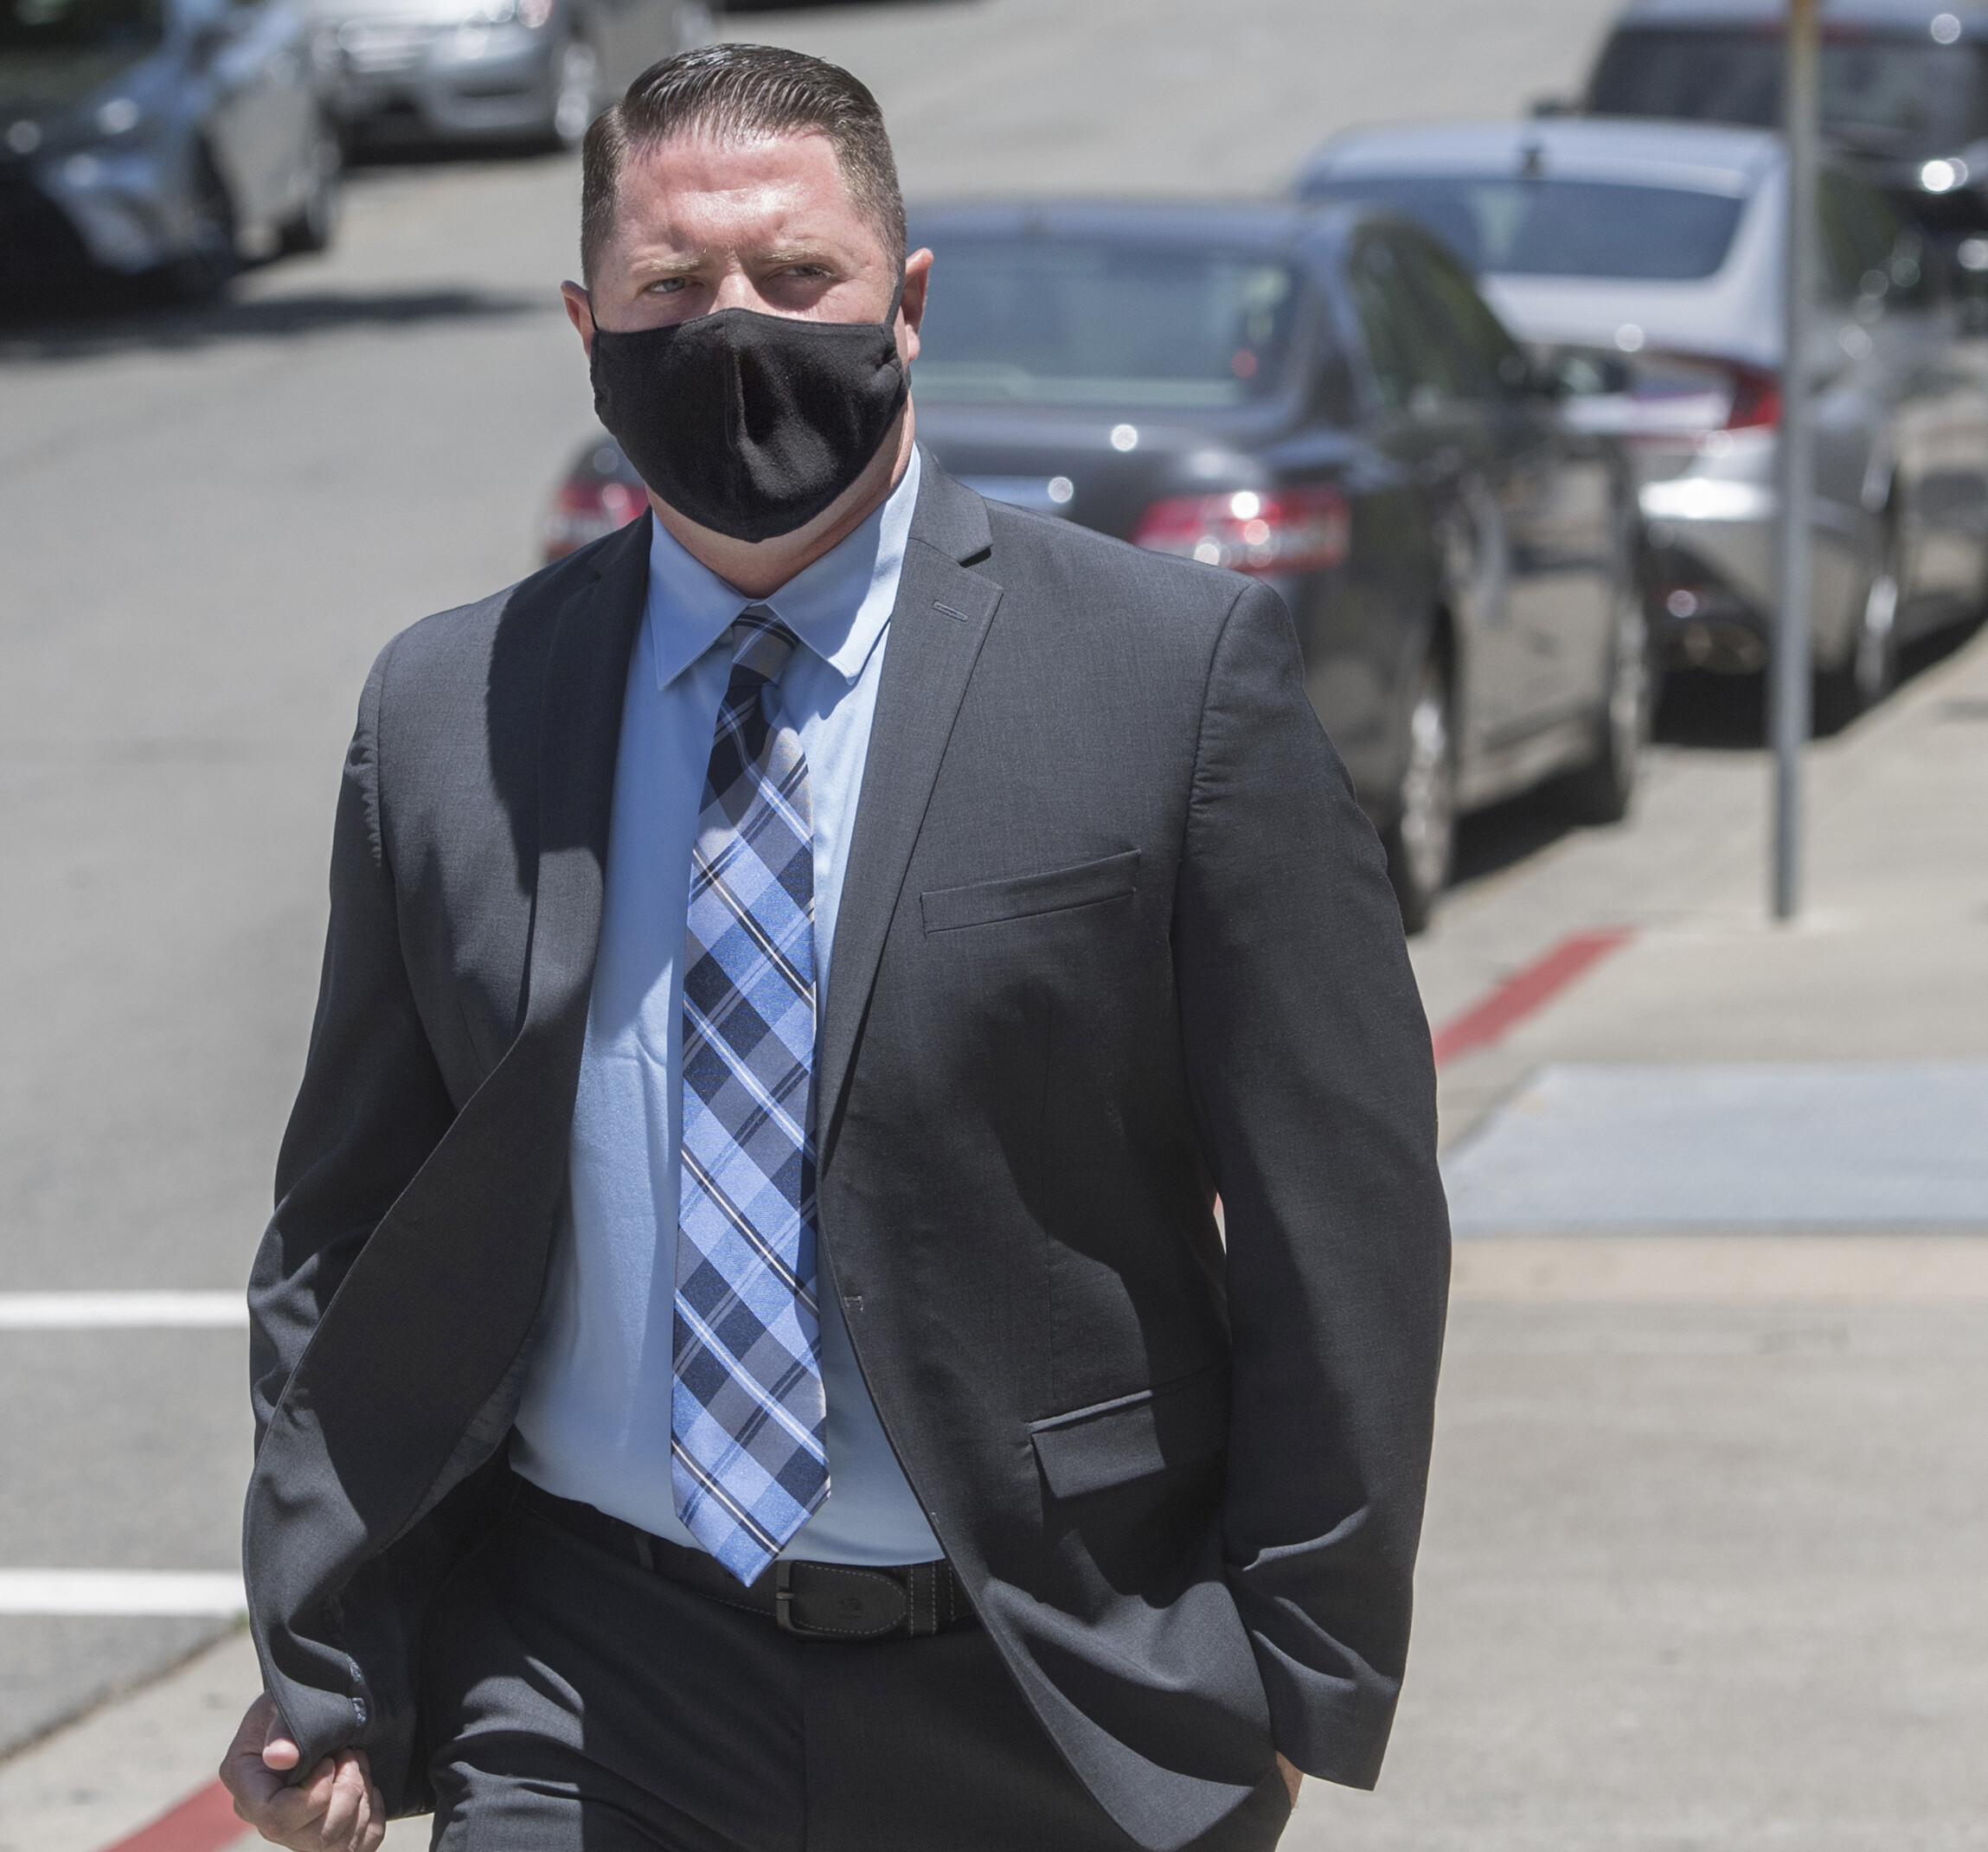 California police officer convicted of firearm assault in 2018 death of a Black man, but jury deadlocked on manslaughter charge